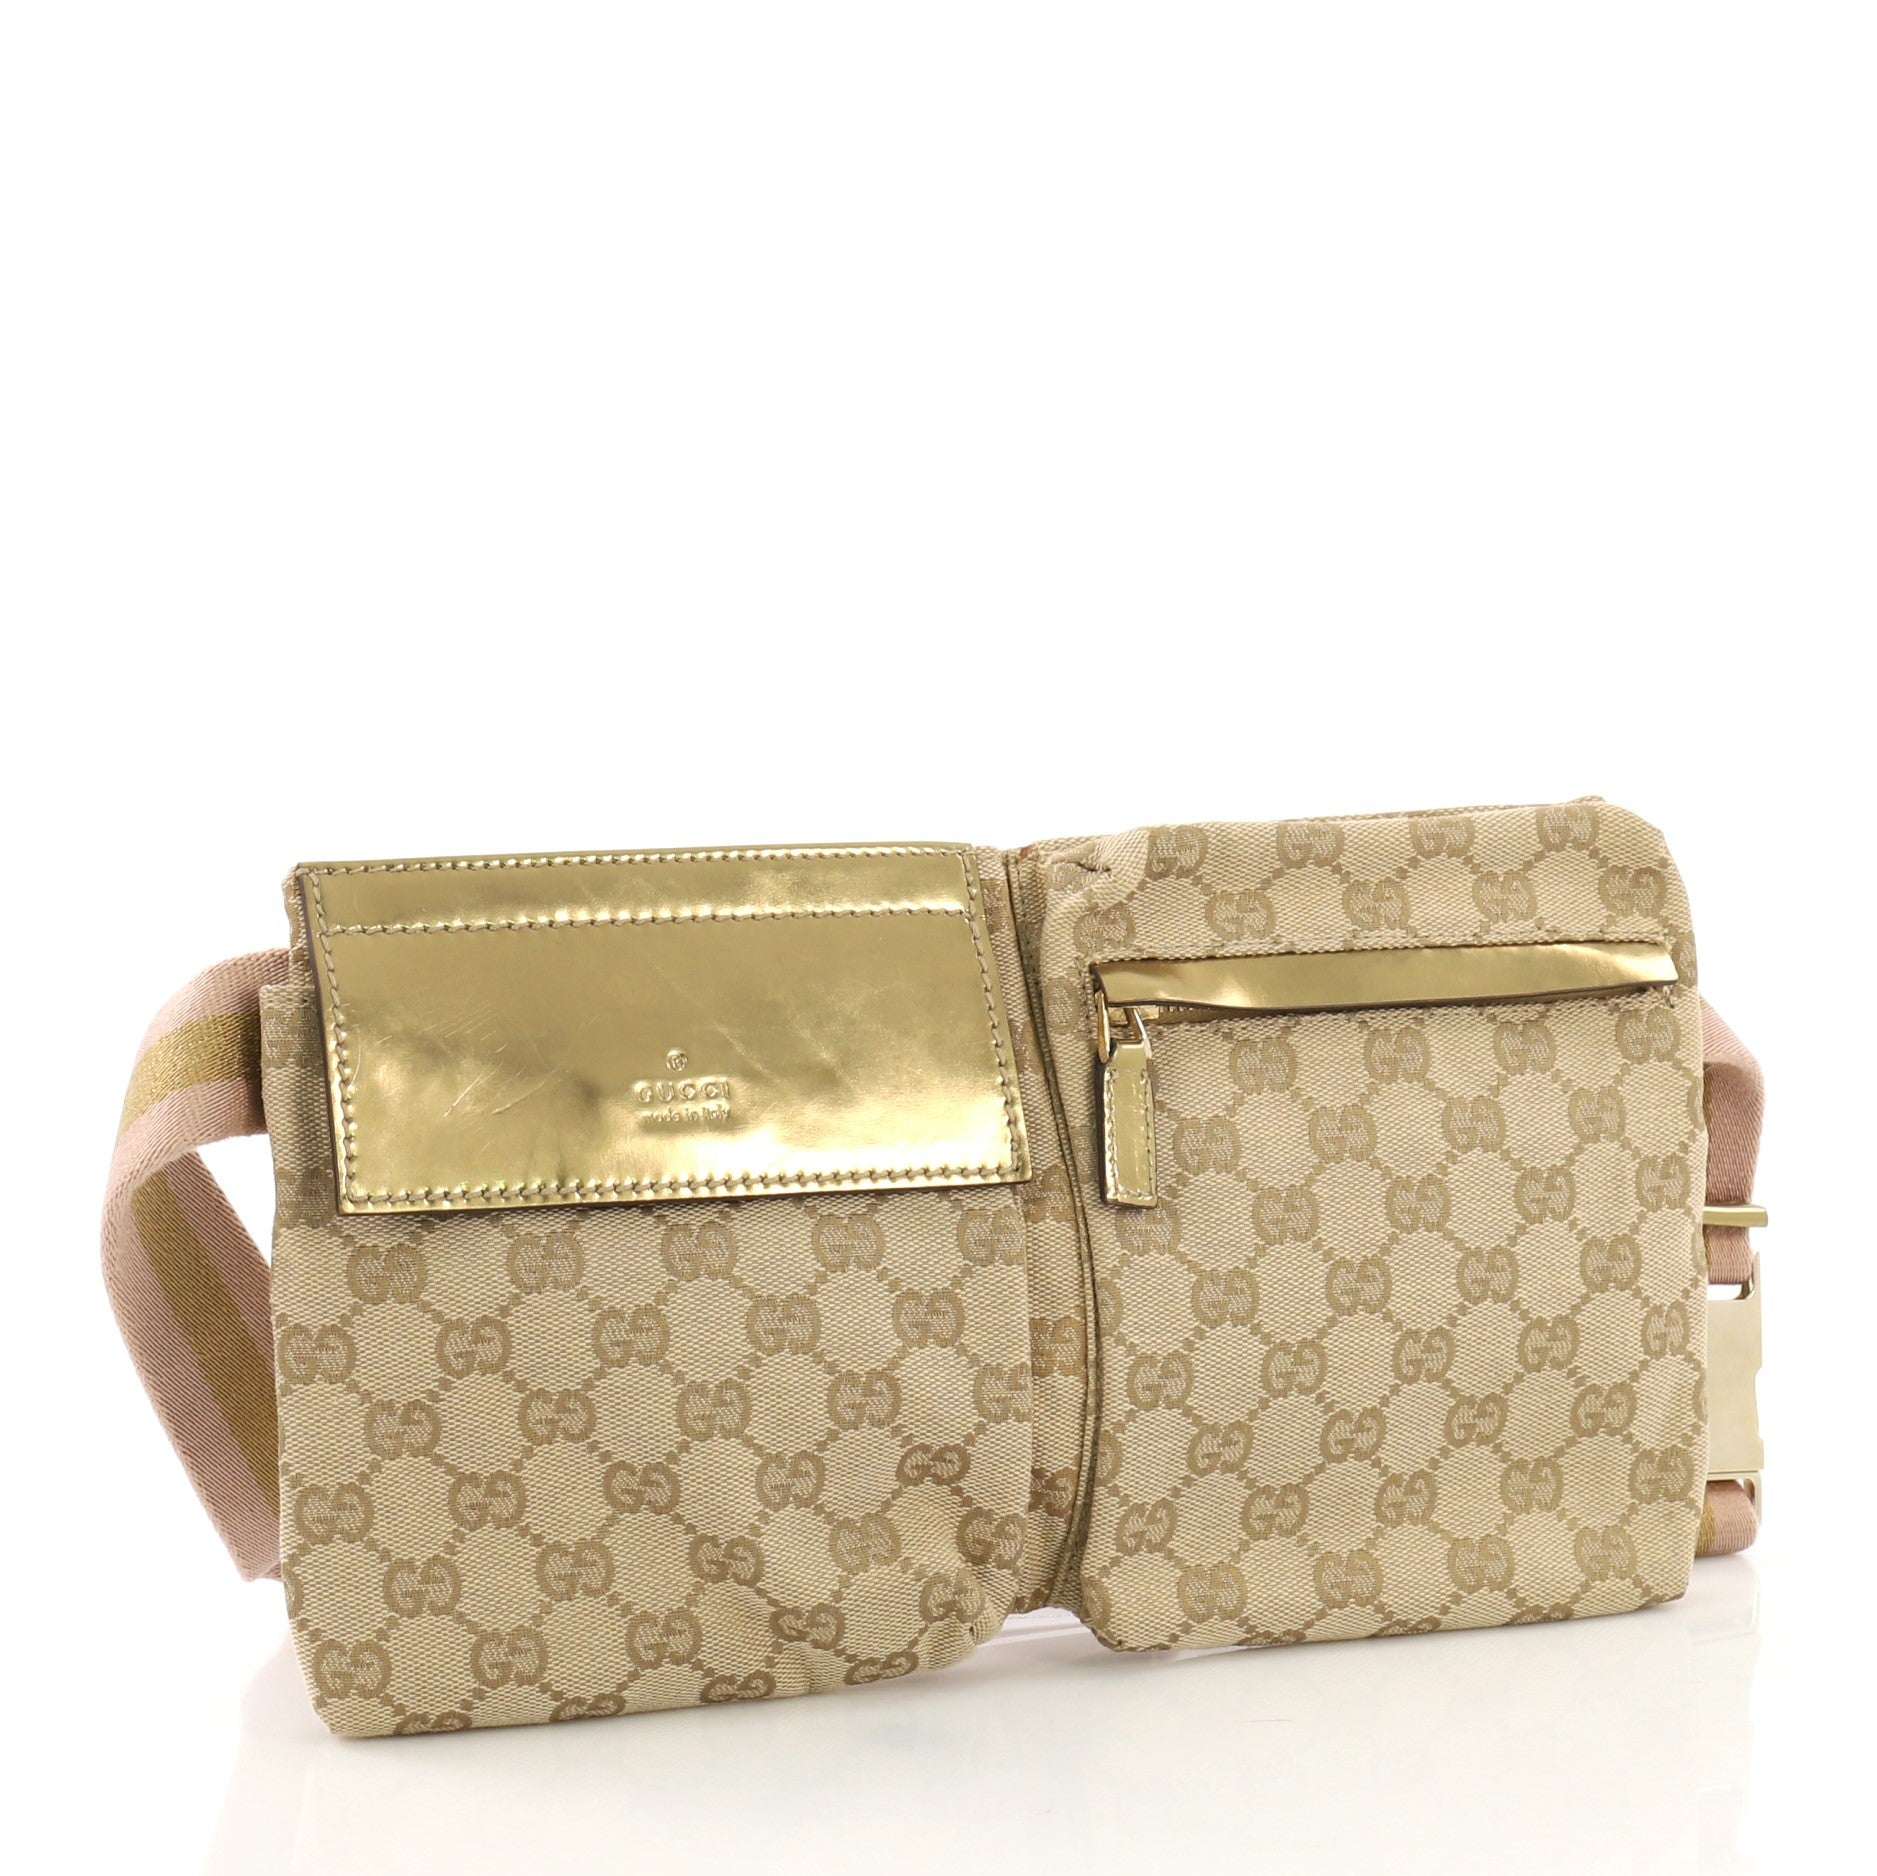 a5f3b020bc856e Gucci Vintage Double Belt Bag GG Canvas at 1stdibs